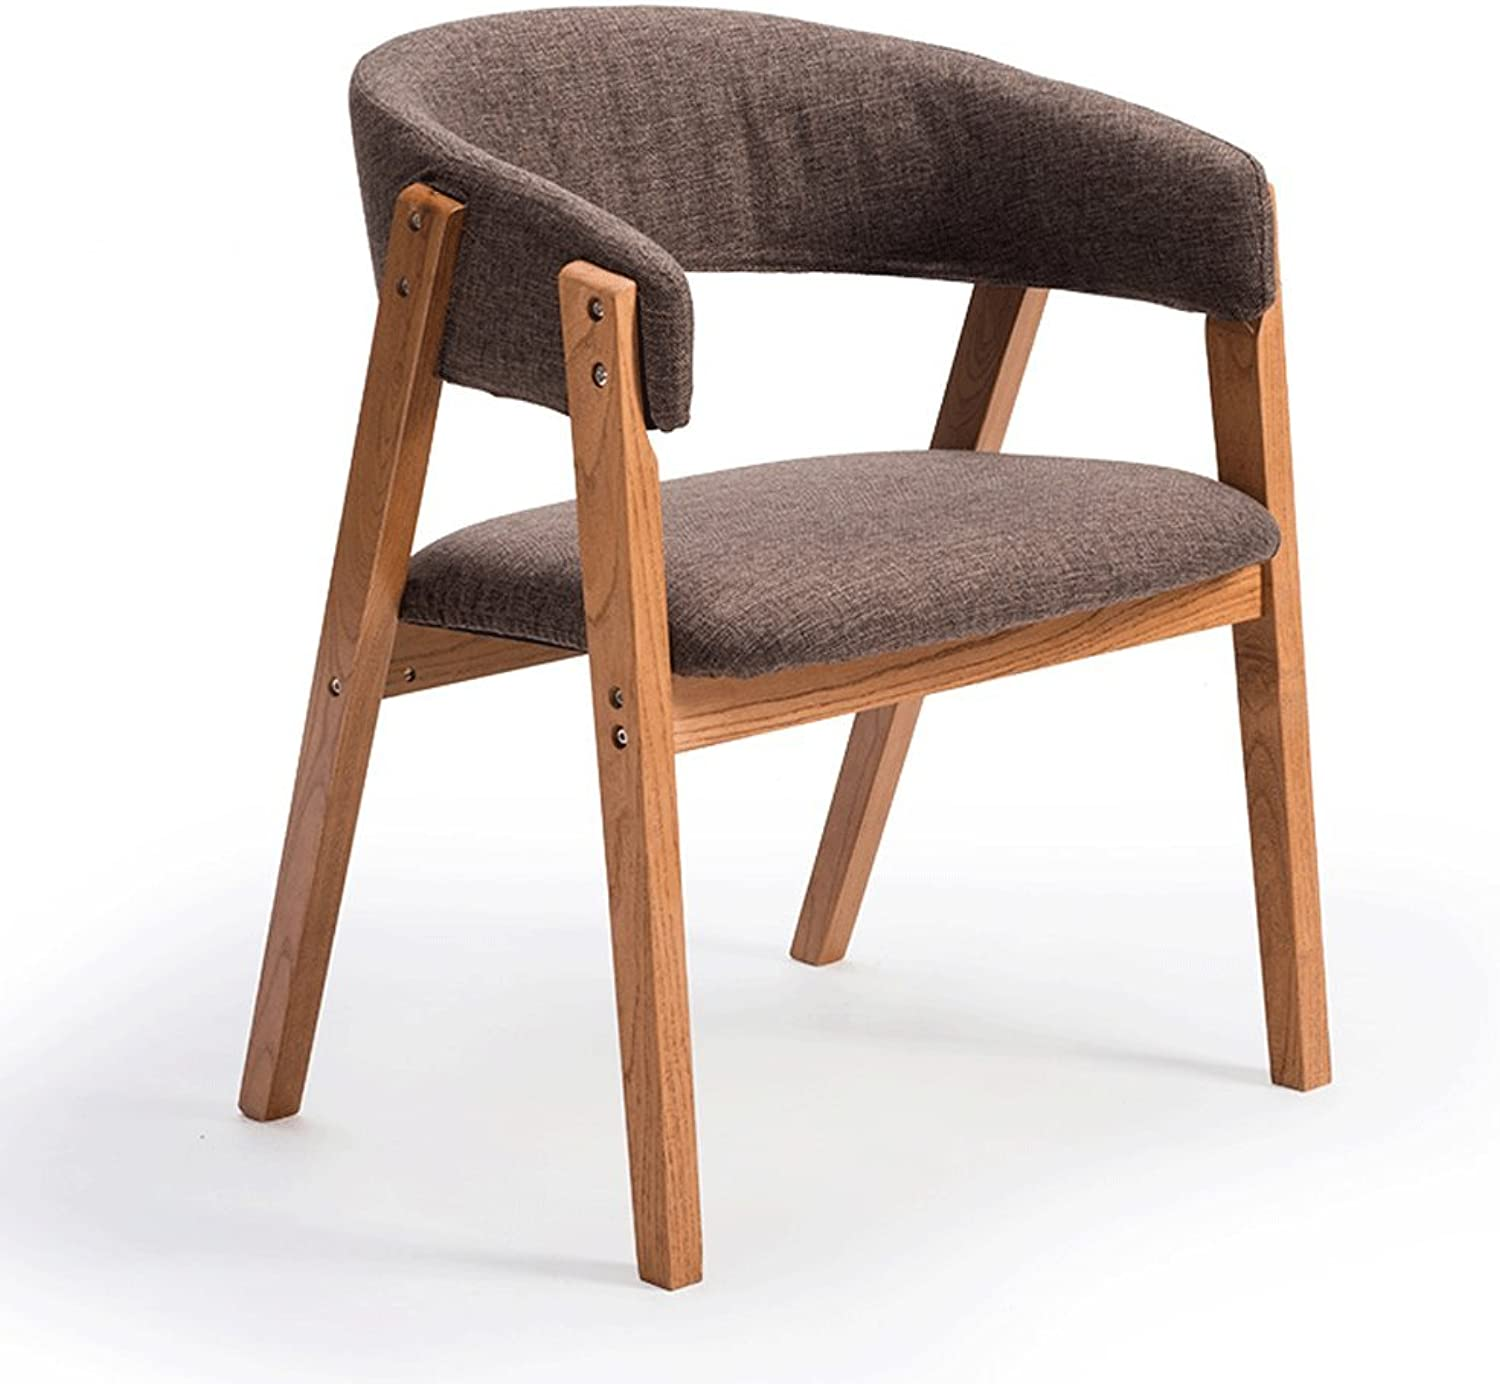 Stool American Wrought Iron Lounge Chair Retro Bar Chair Solid Wood Bar Chair Old Round Bar Comfortable and Durable GFMING (Size   60cm)